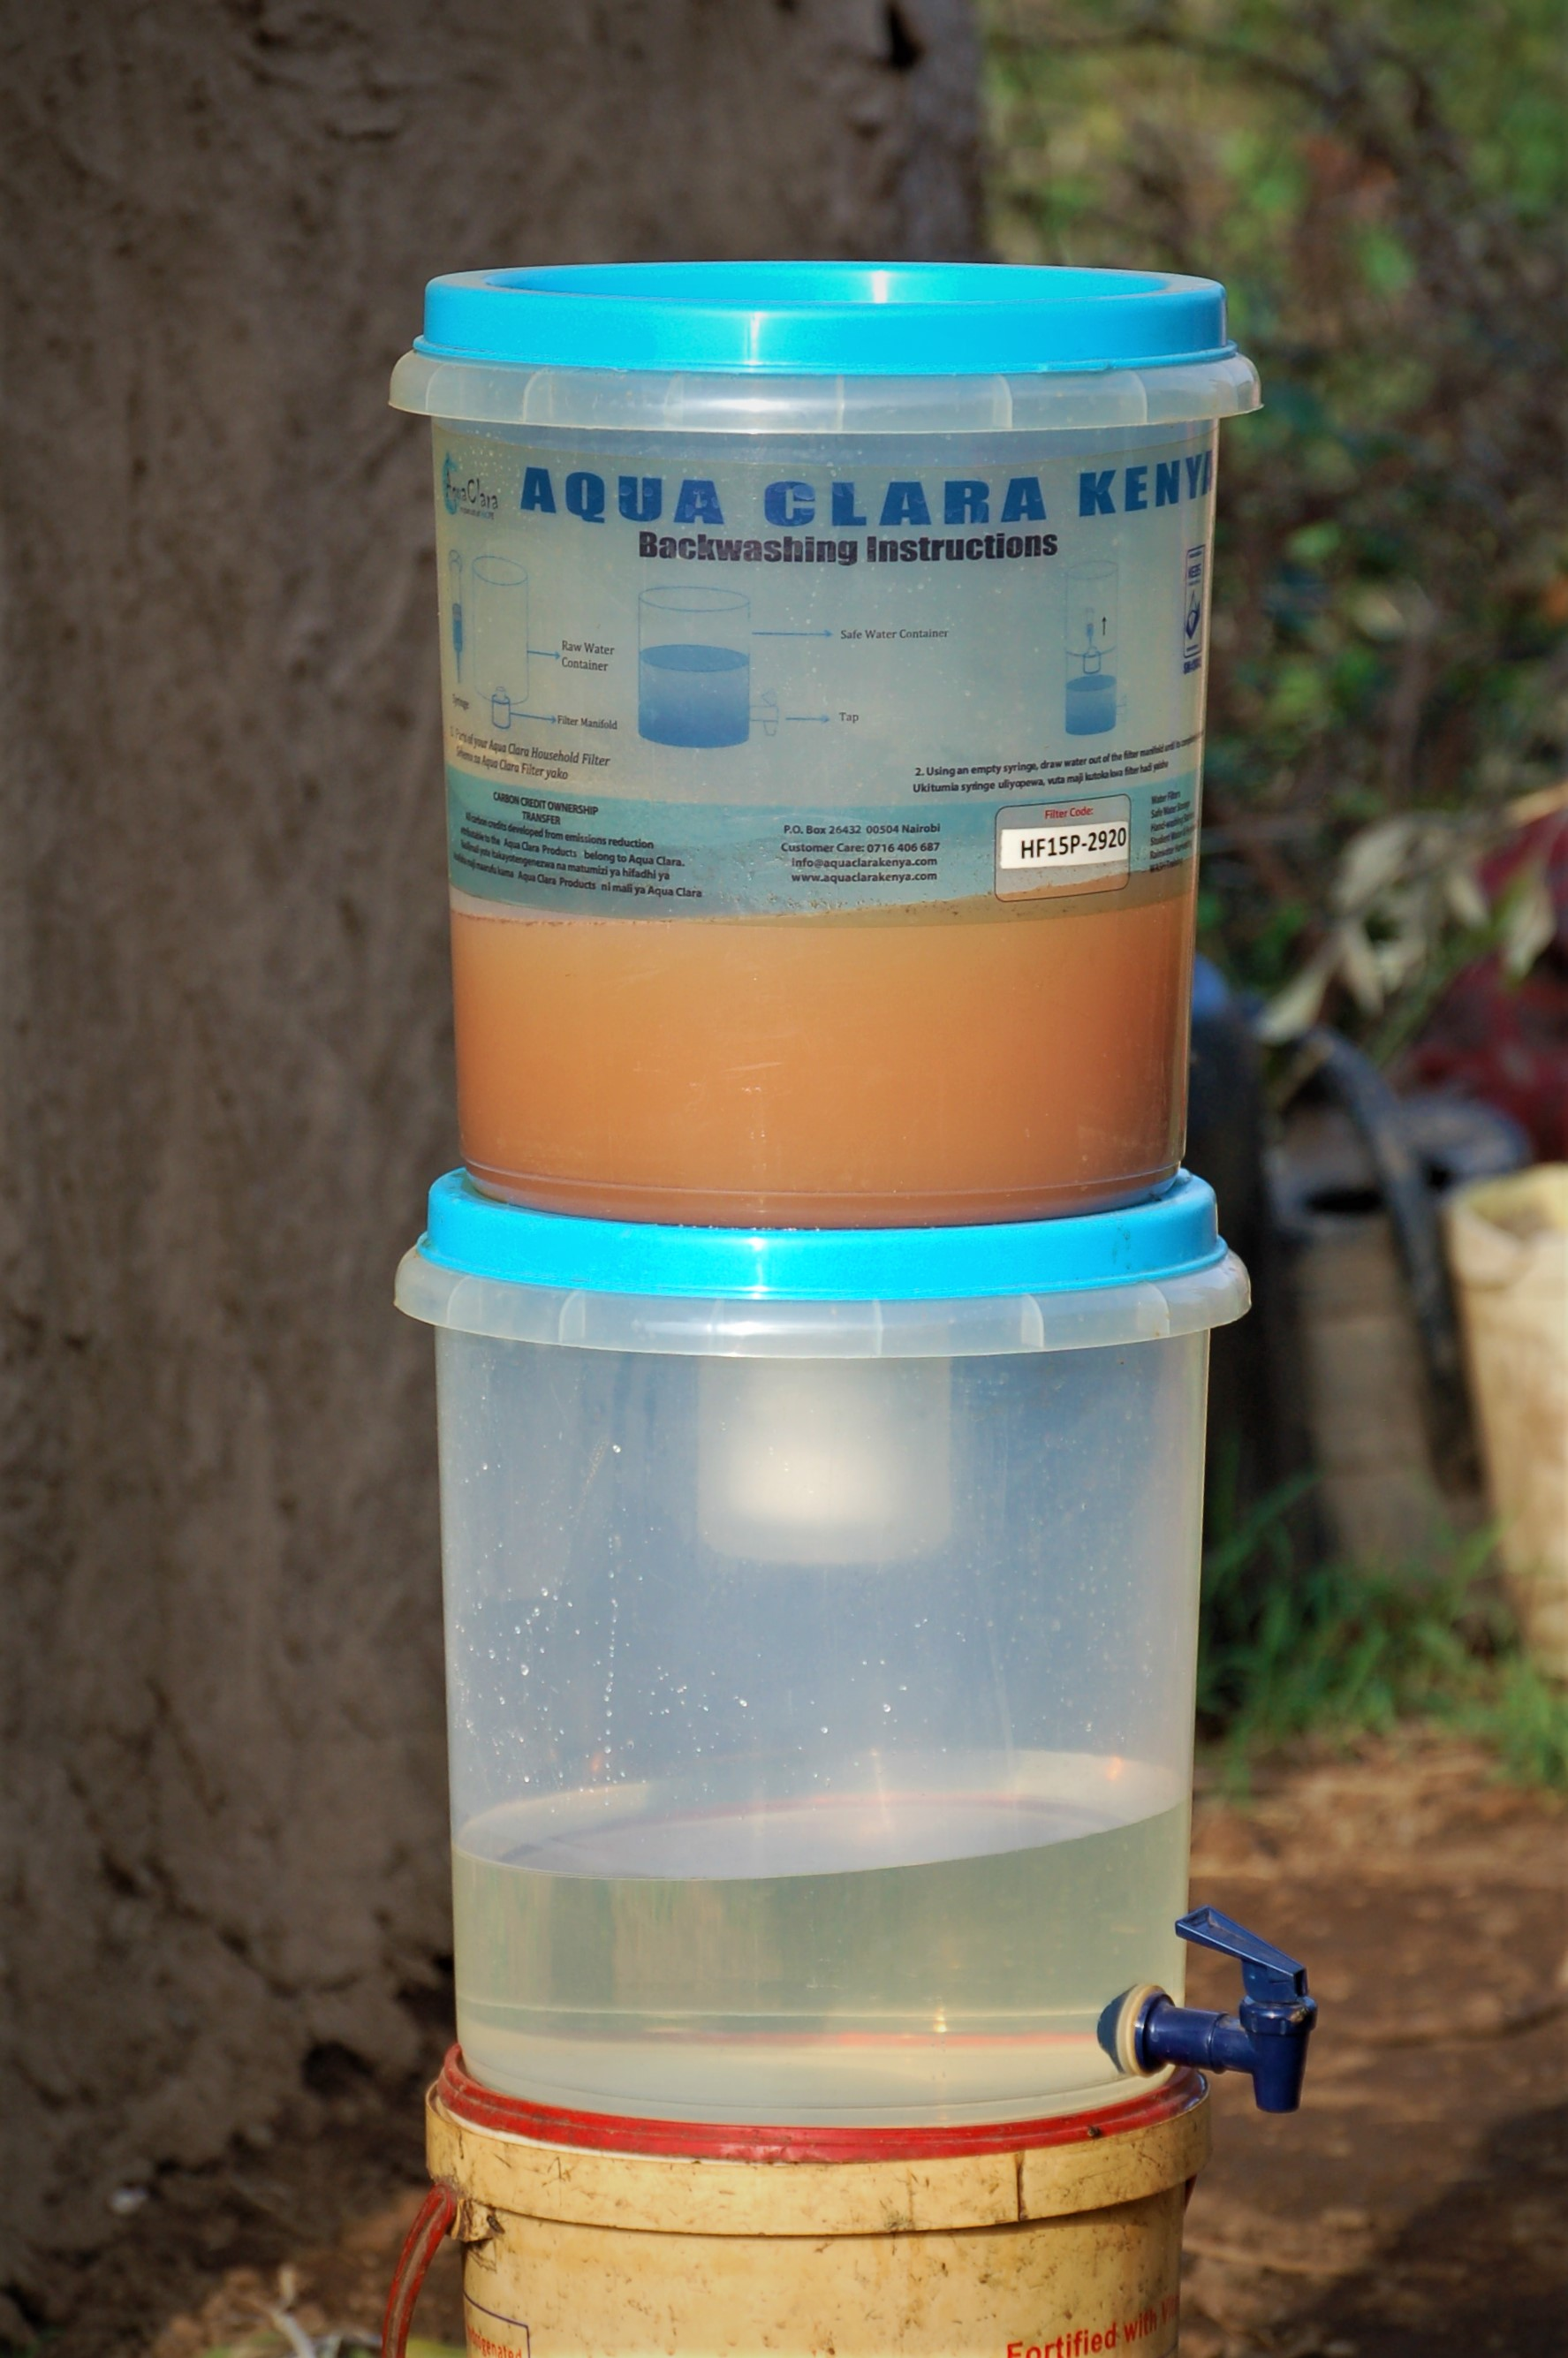 This filter is a hollow fiber membrane filter that removes 99.9% of disease causing bacteria. It is produced and sold in Kenya, not shipped in from the West. The participants contributed a small amount to receive the filter (it wasn't just given for free) to help us/AquaClara research best practices for the WASH program. Later, the teachings and filters will be able to be used more widely throughout Kenya and even East Africa.